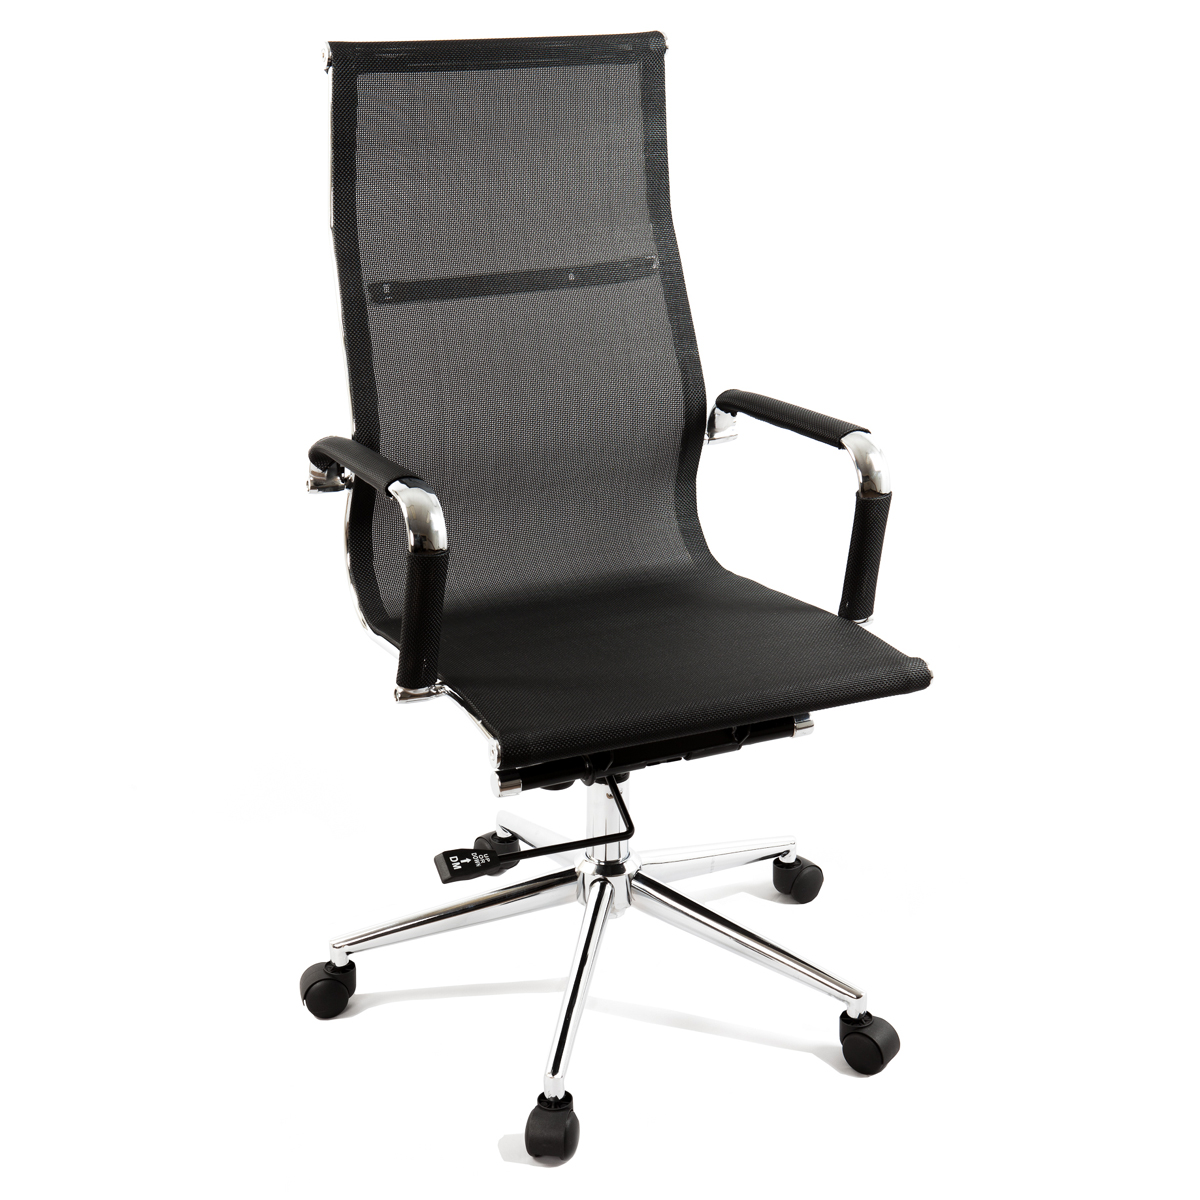 black modern ergonomic mesh high back executive computer desk office